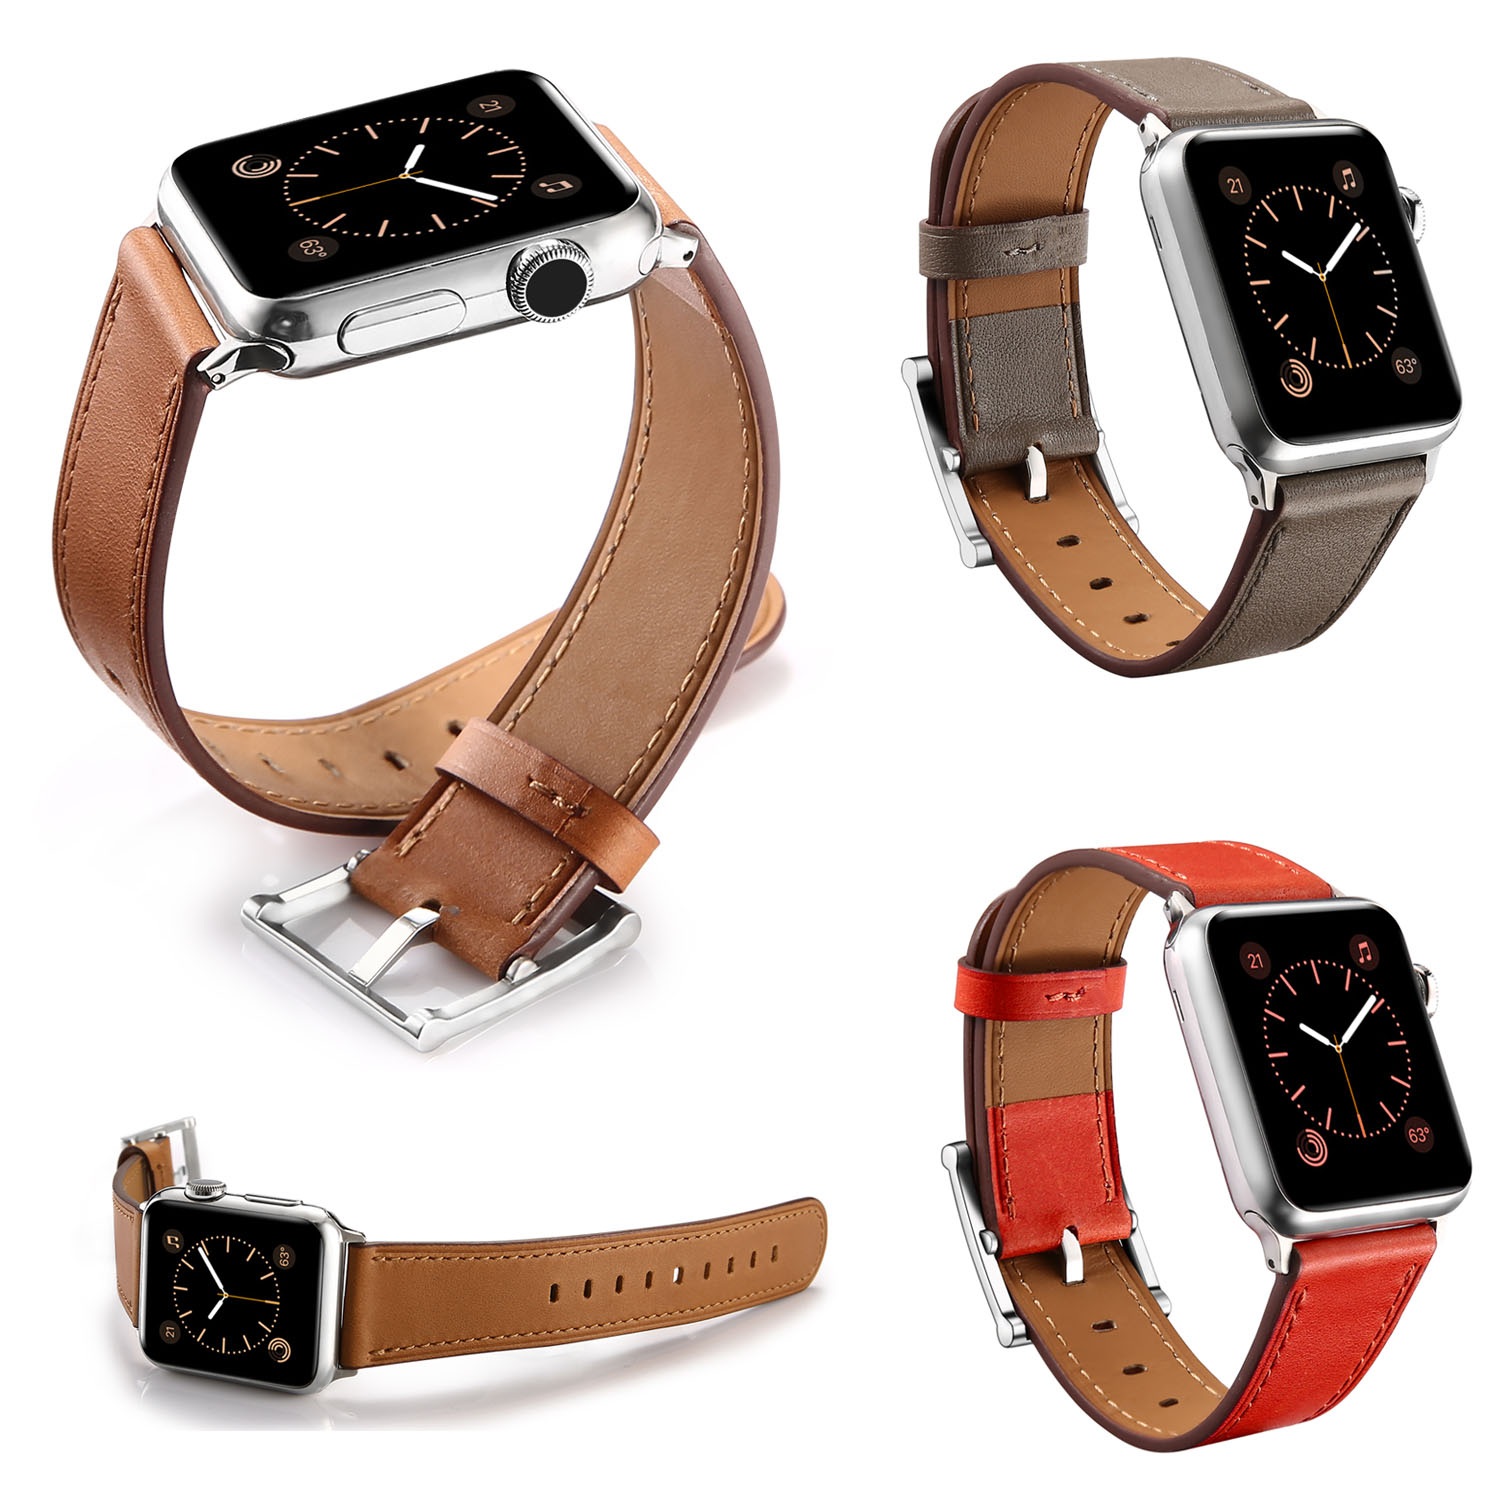 Square Metal Buckle Genuine Leather Band for Apple Watch Strap 42mm 38mm Watchband for iWatch Series 1/2 Watch Strap kakapi crocodile skin genuine leather watchband with connector for apple watch 38mm series 2 series 1 pink